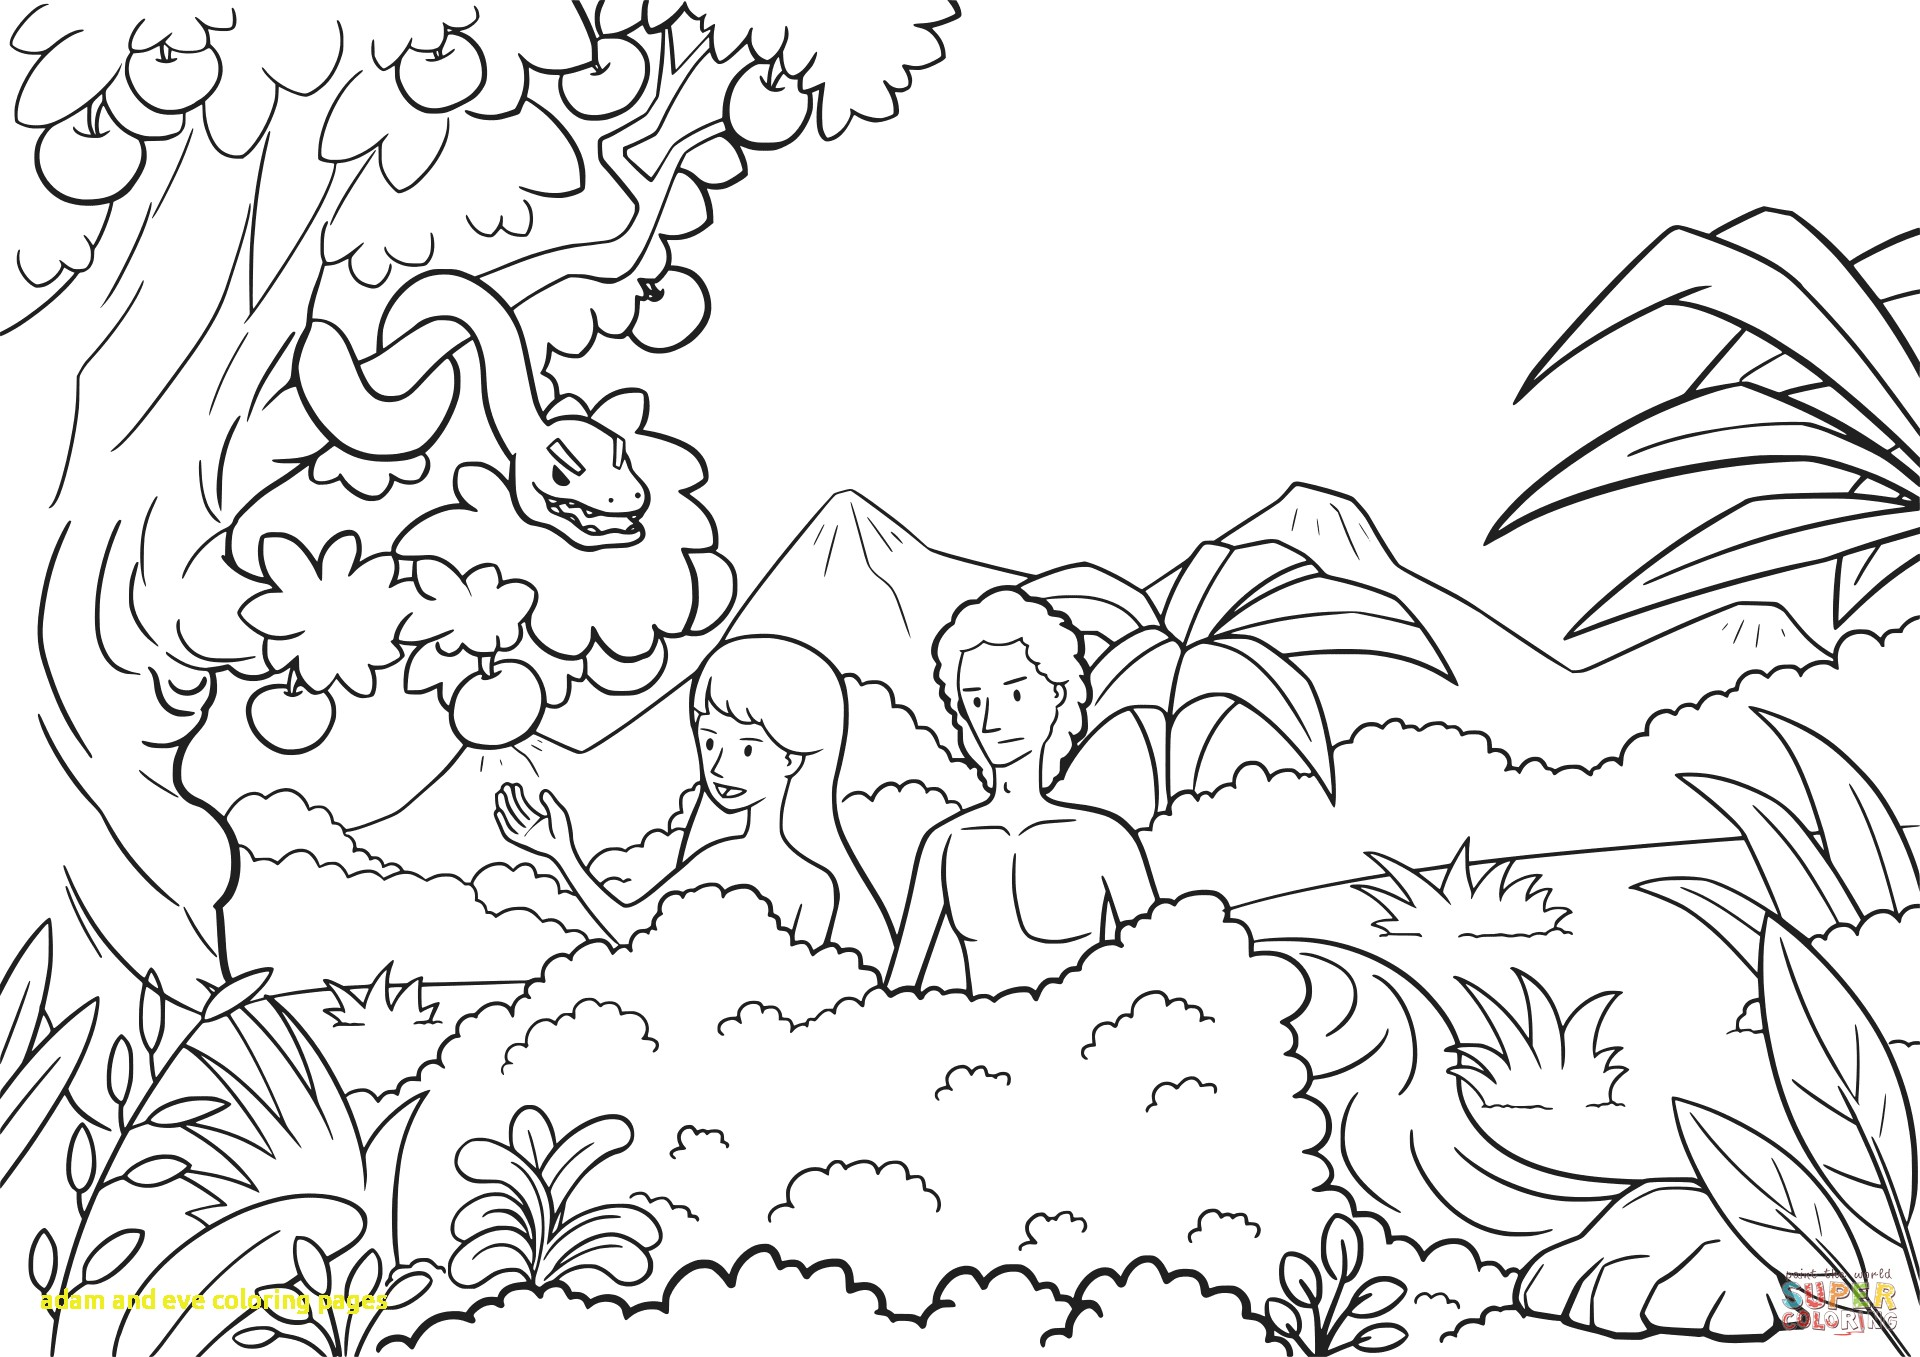 Garden Of Eden Drawing at GetDrawings Free for